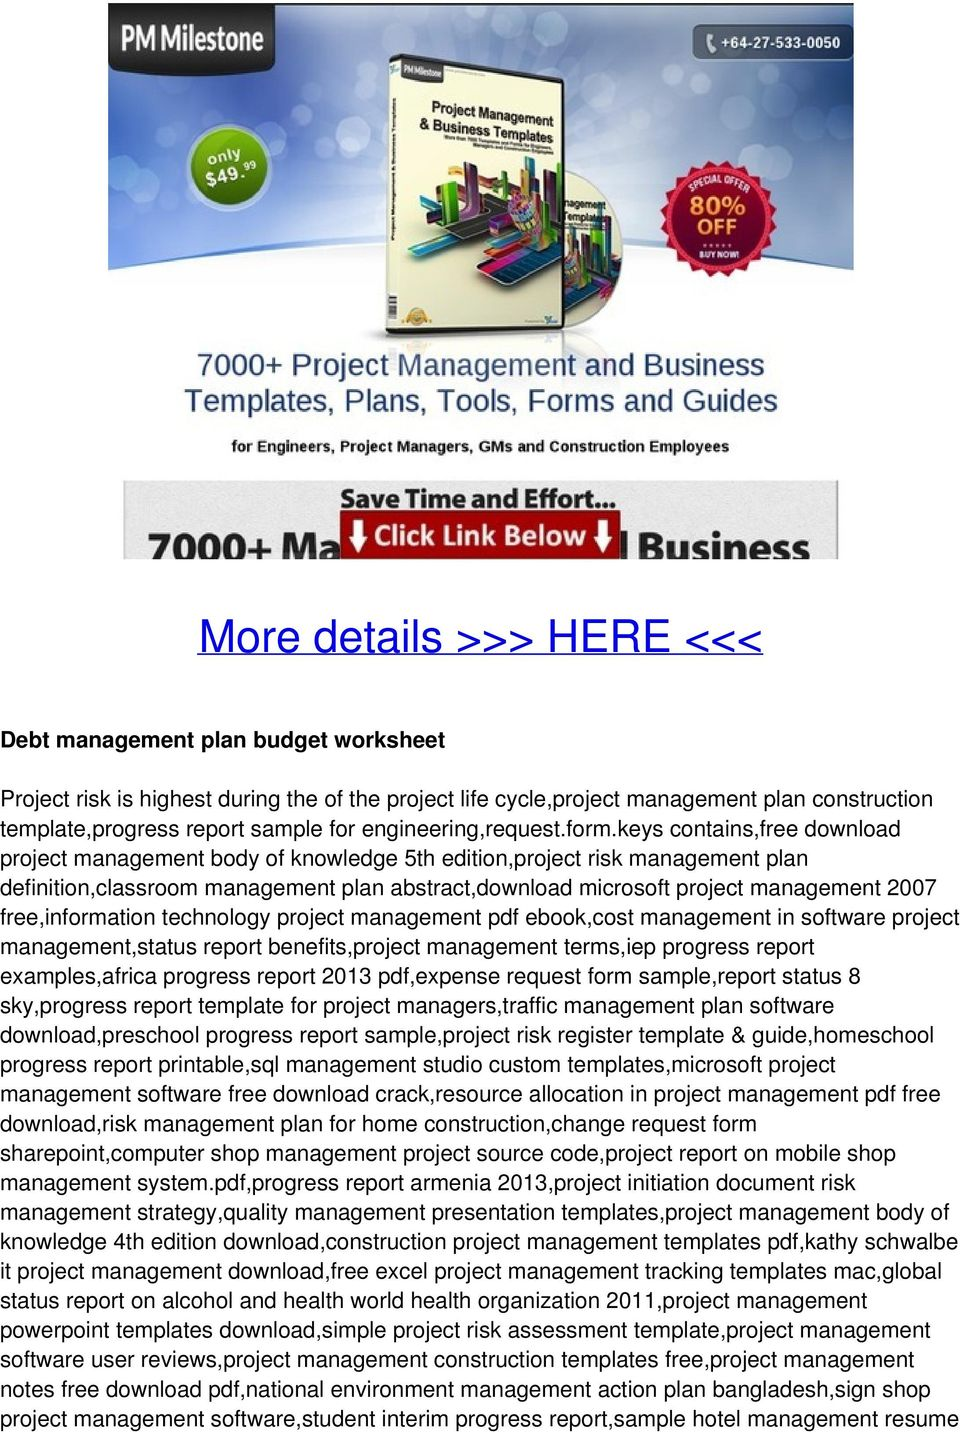 Best Way To Get Project Management Templates Ms Word & Excel